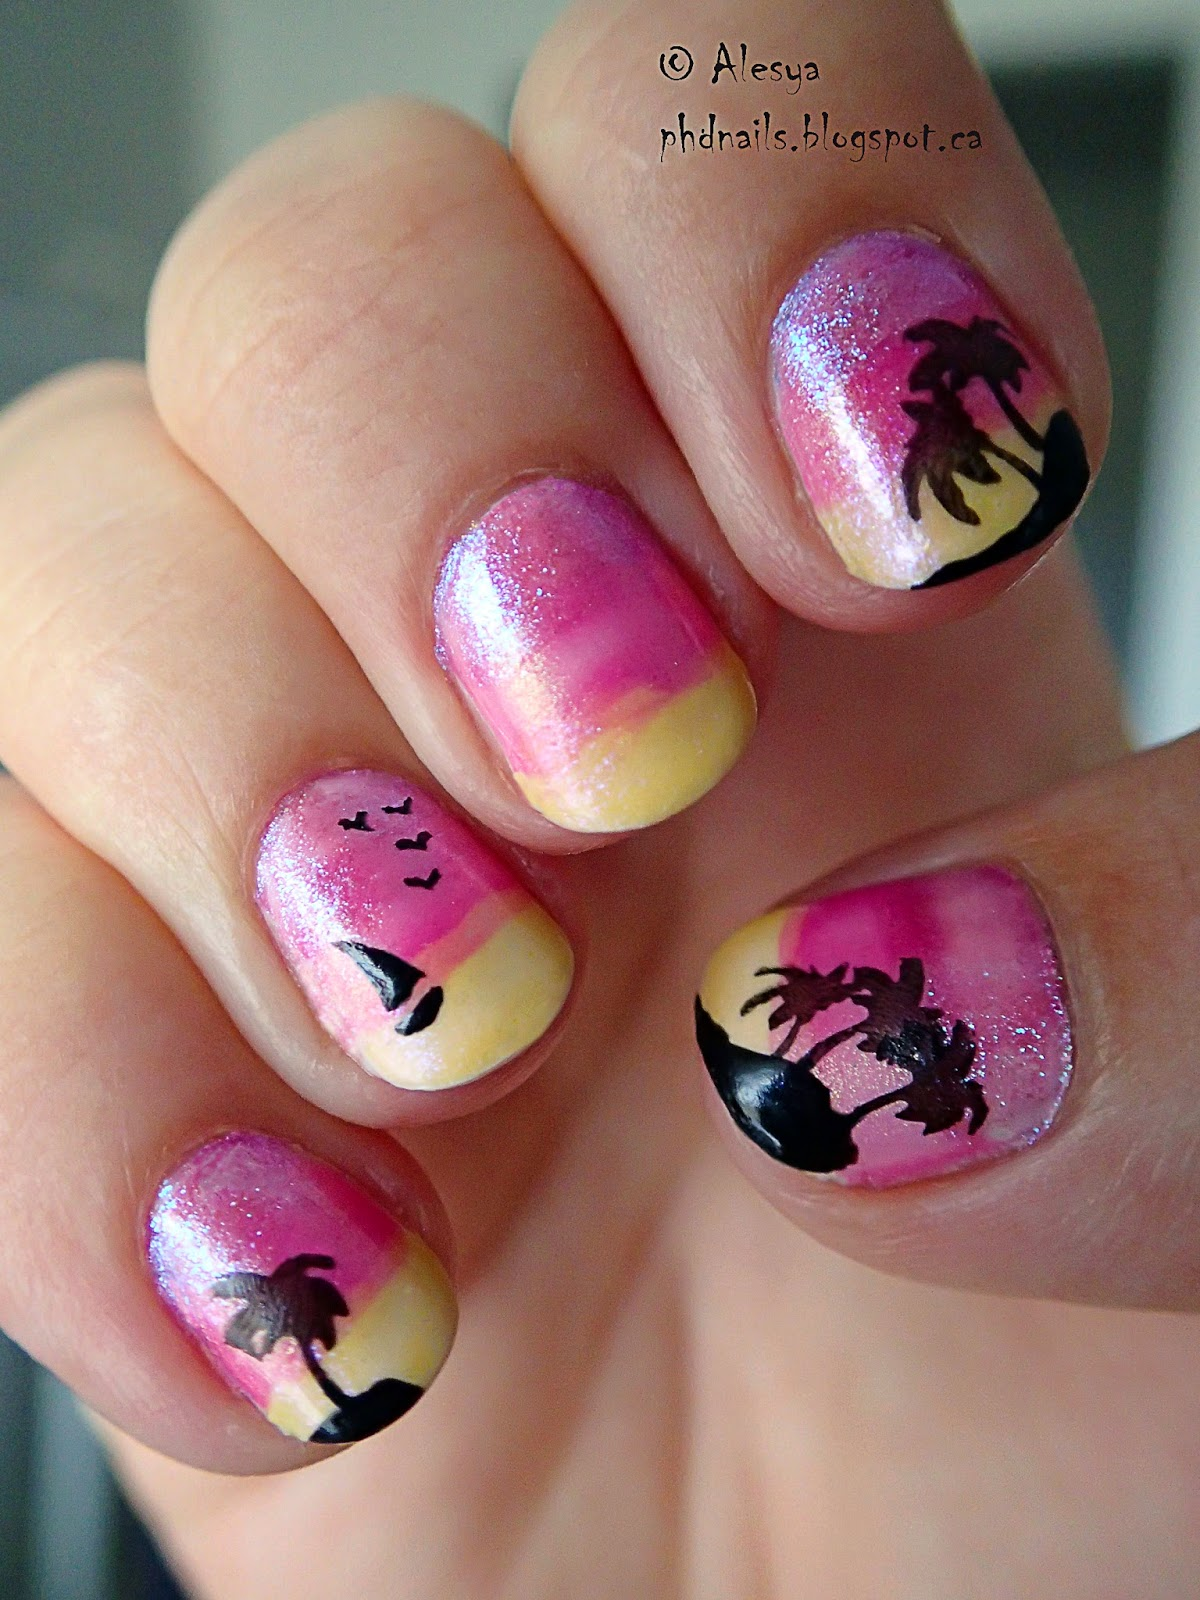 Phd nails september nail art challenge stamping month day 6 travel prinsesfo Choice Image